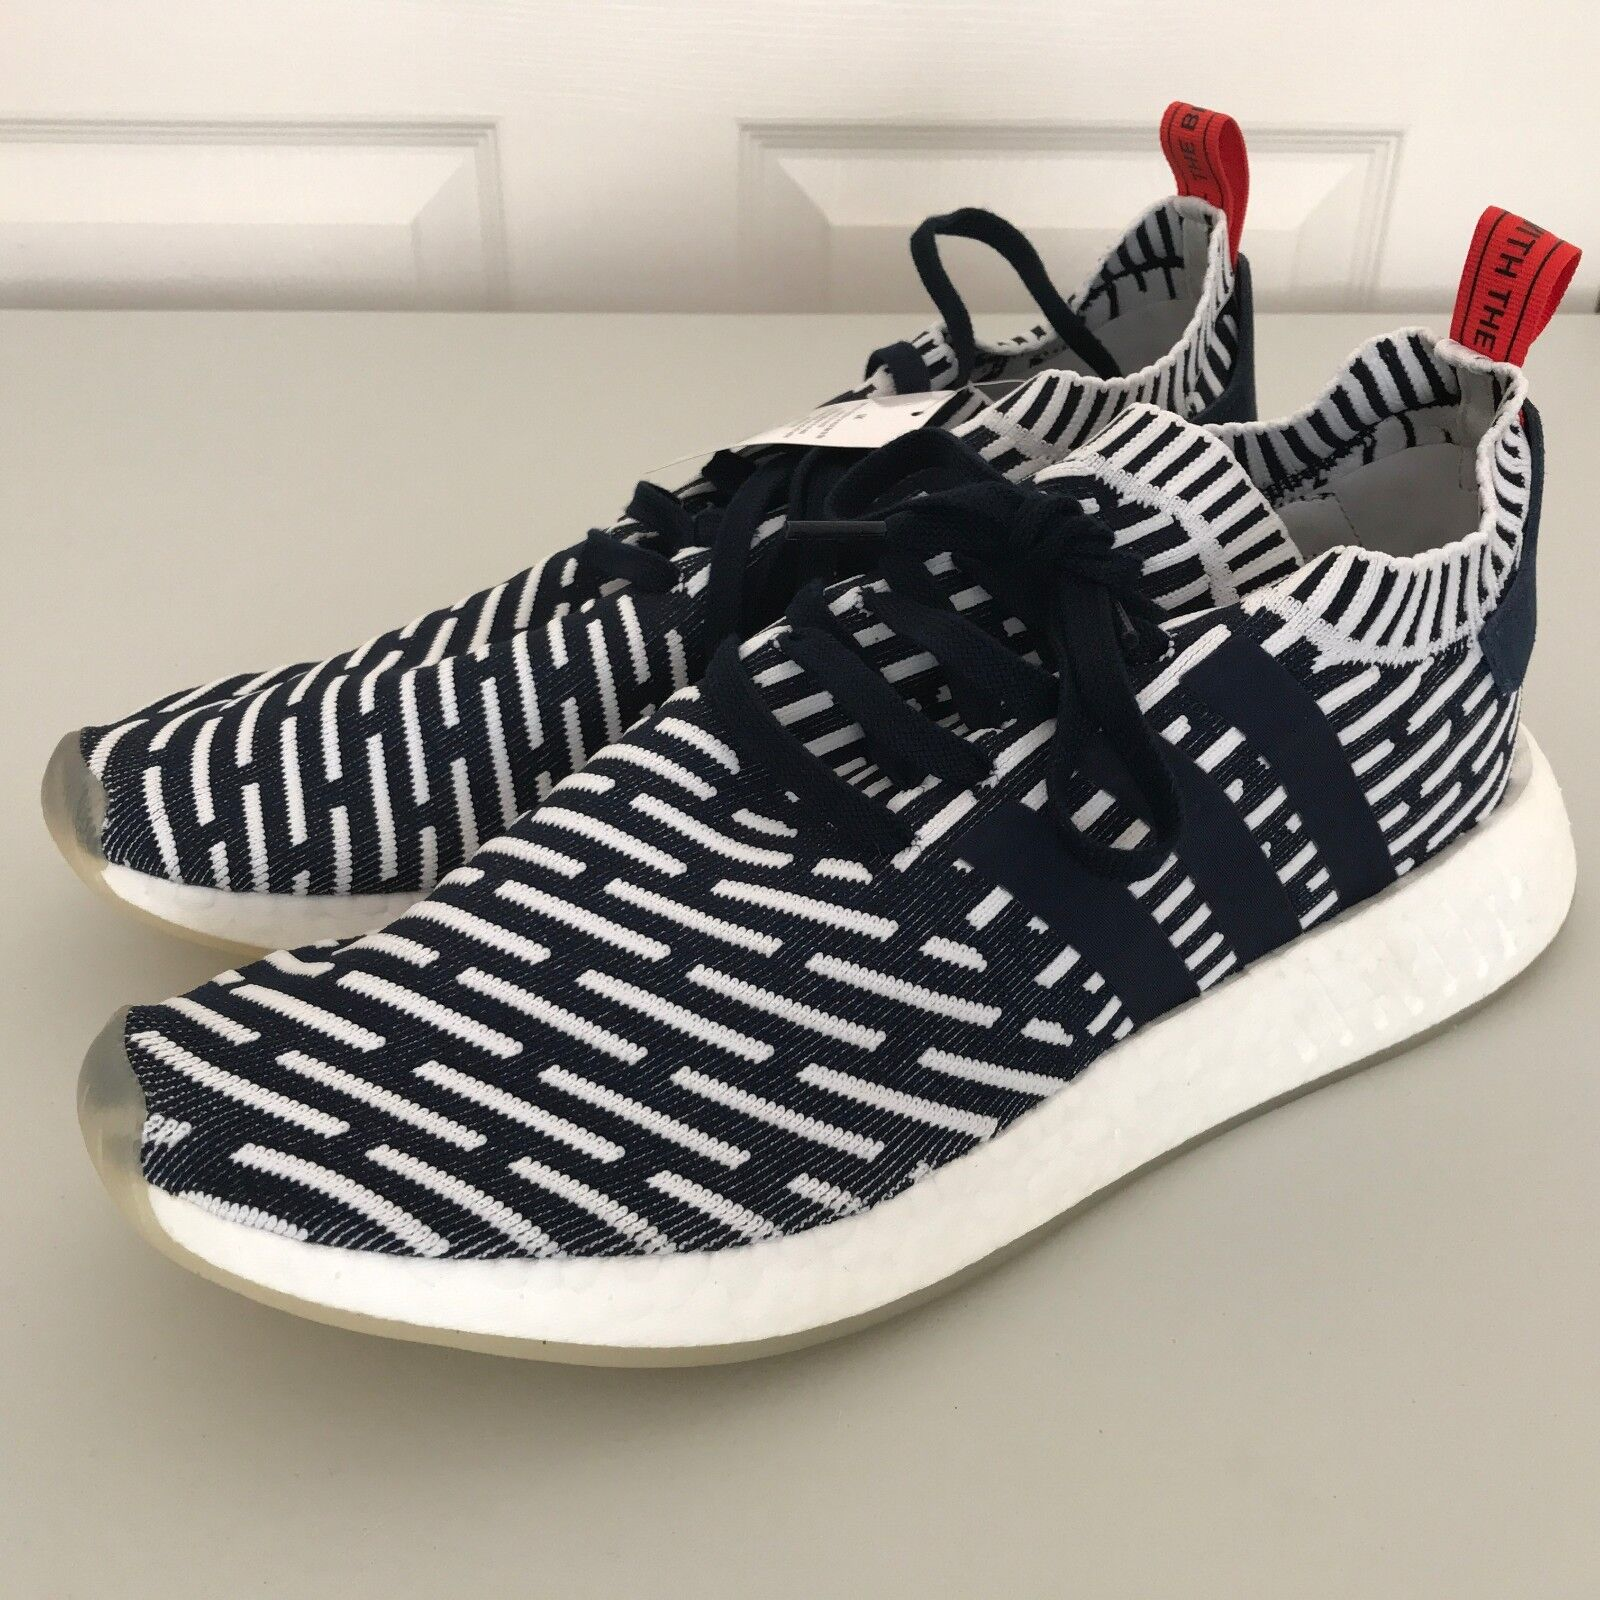 NEW adidas Mens NMD R2 Primeknit Running shoes Navy bluee White Sz 12.5 (BB2909)